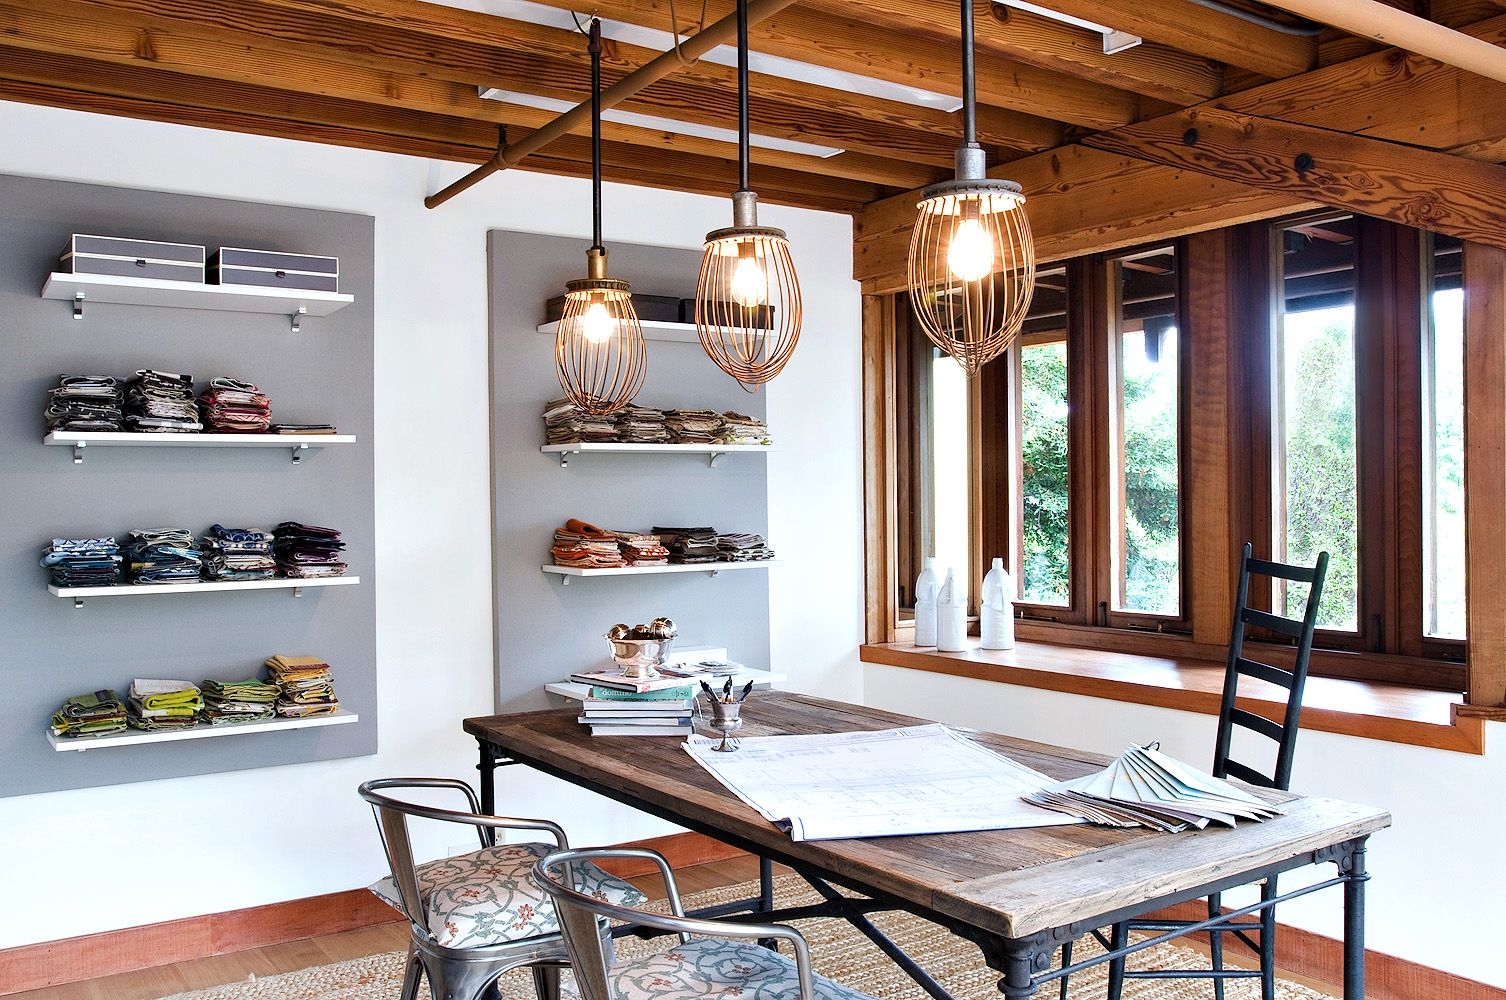 Design Industrial Light Fixtures industrial lighting inspiration from desktop to chandeliers 2 3 piece dining